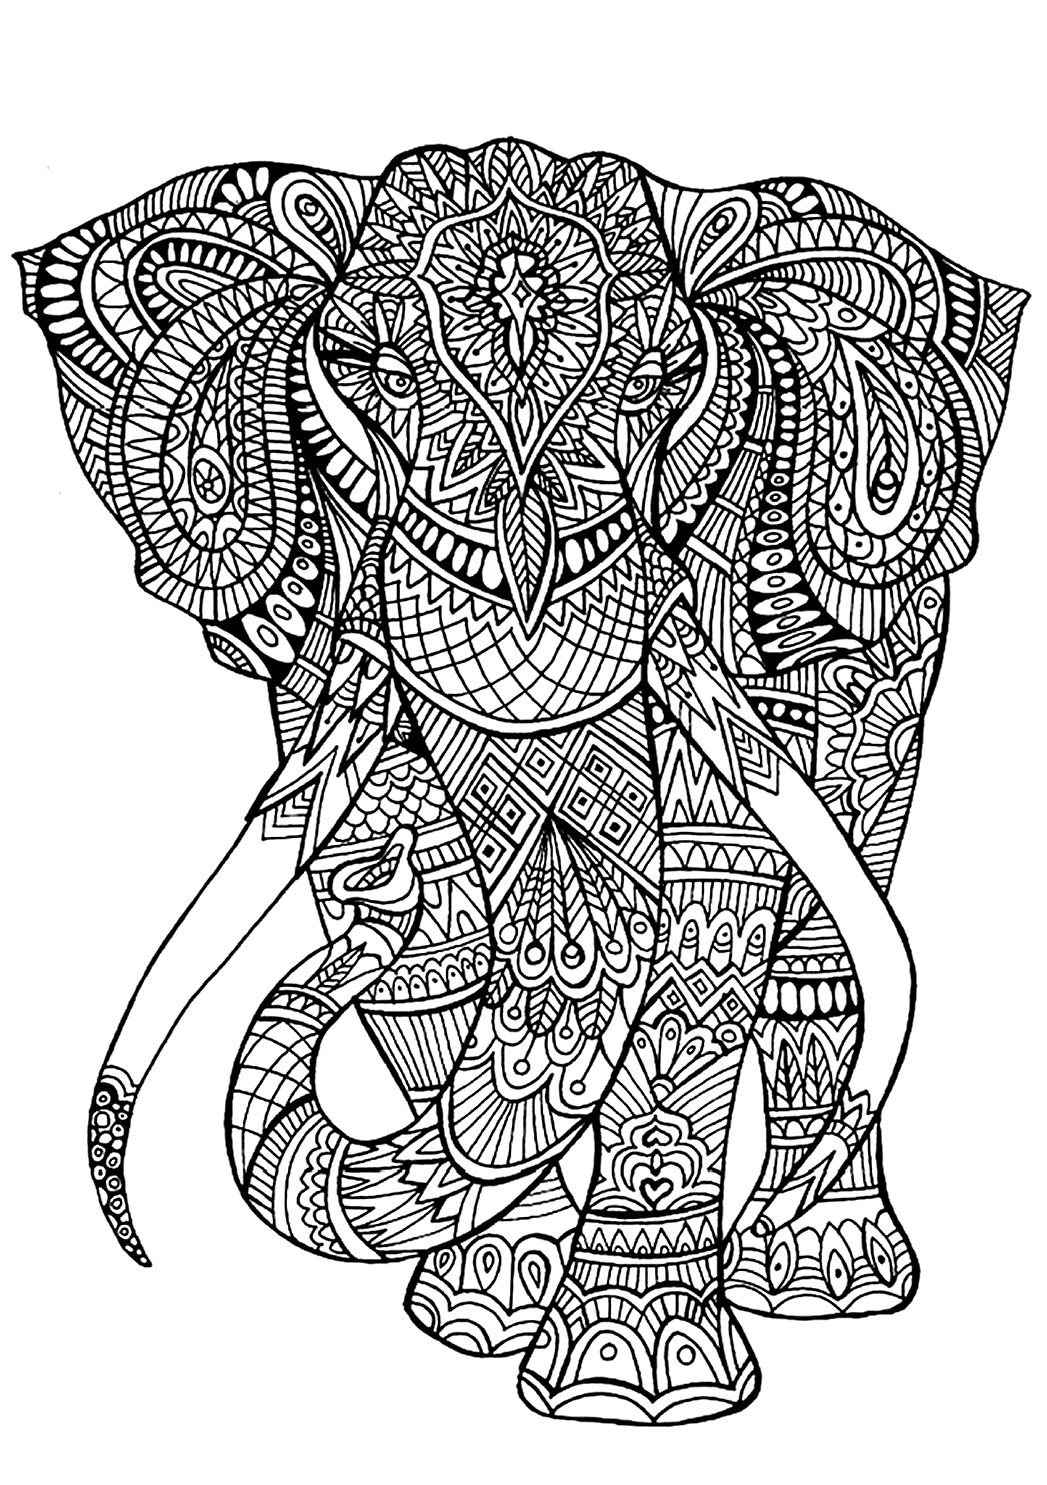 coloring sheet for adults christmas coloring page for adults poinsettia coloring page for coloring sheet adults